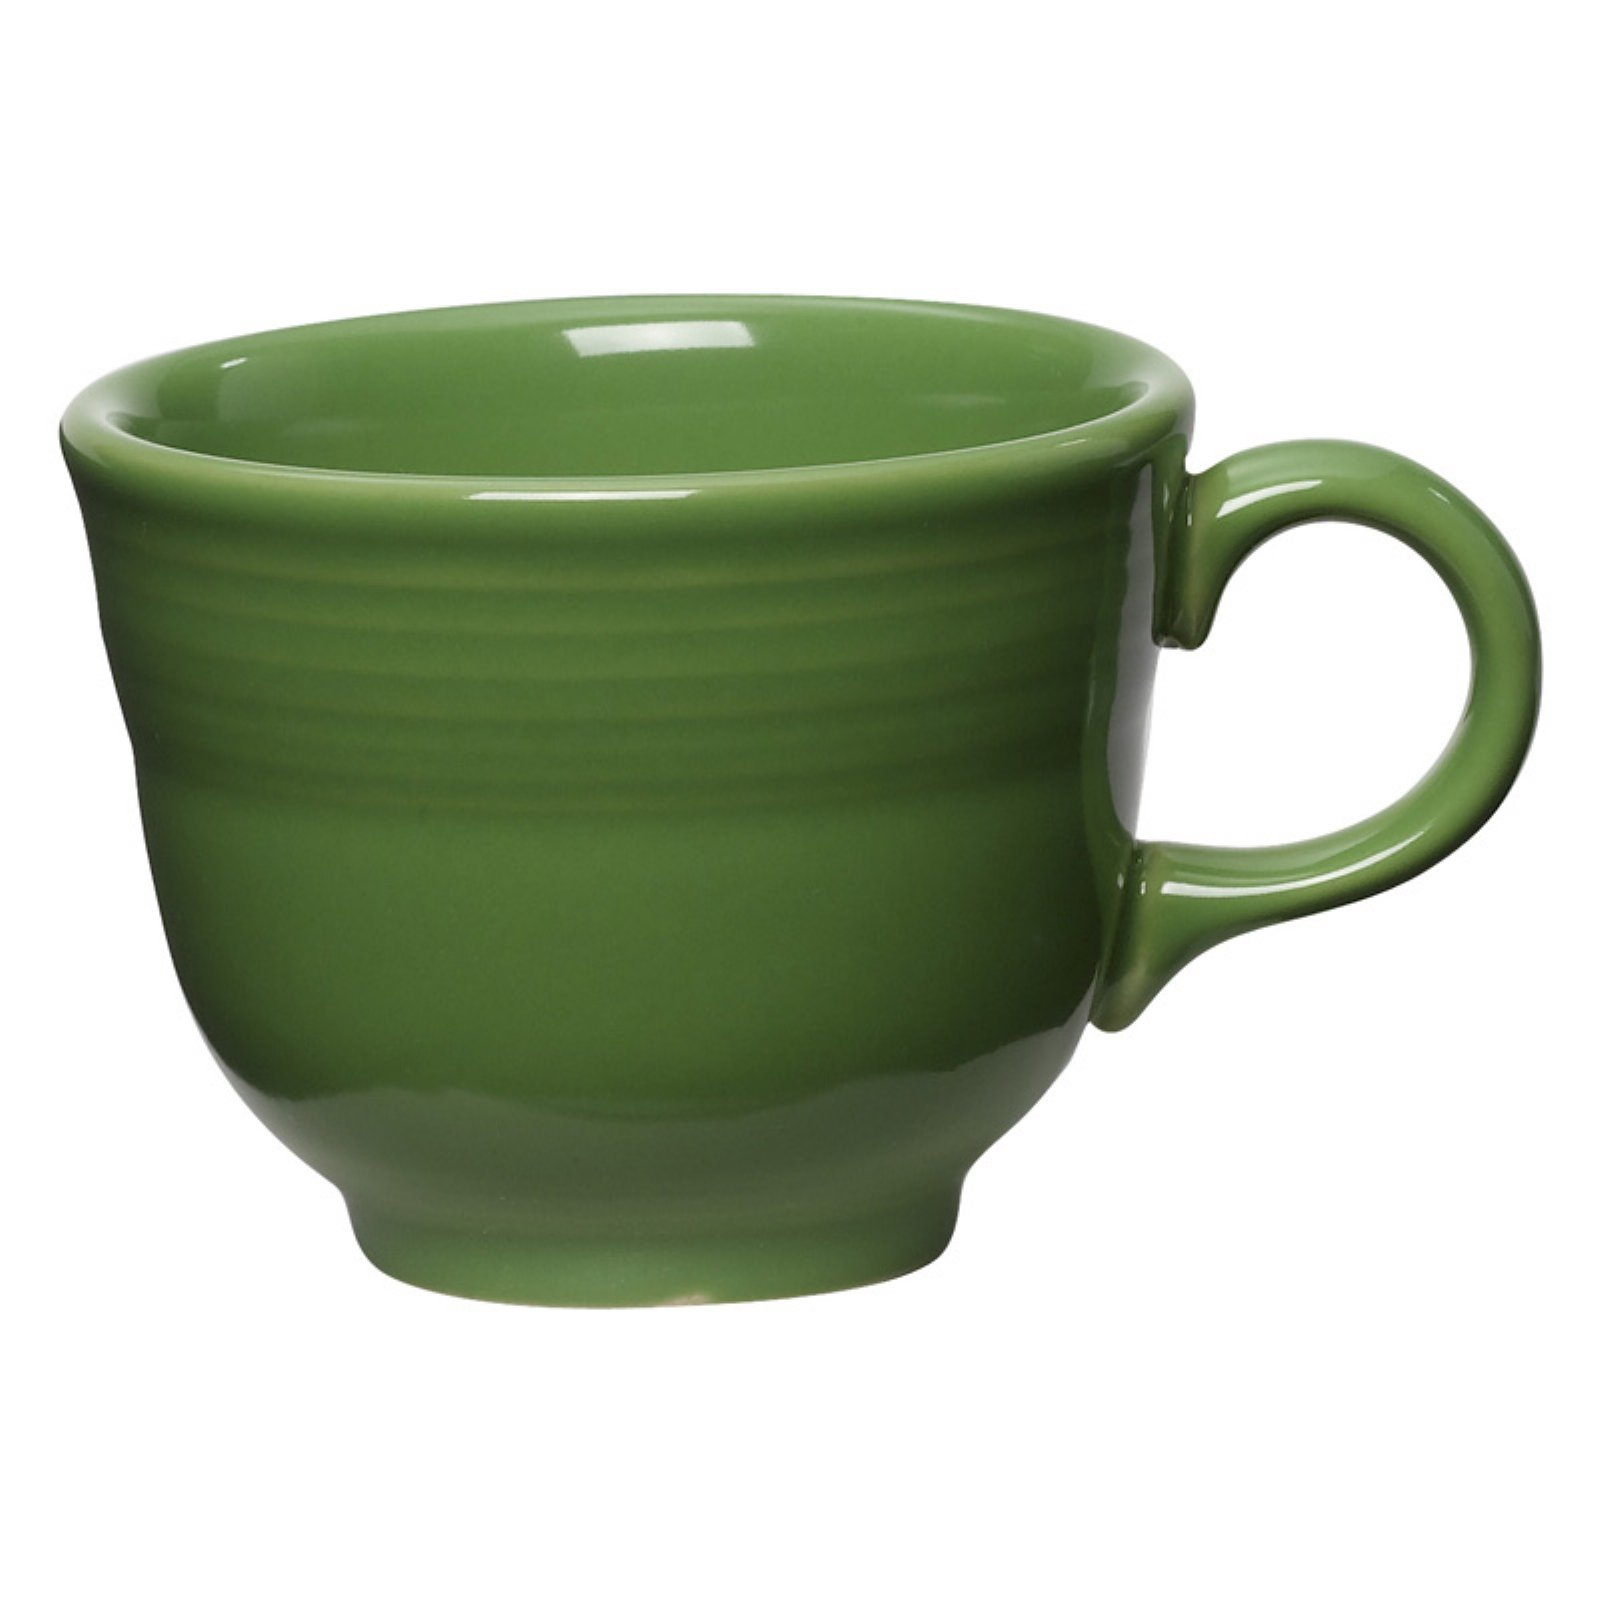 e2dbb3c2cad Fiesta Shamrock Coffee Cup 7.75 oz. - Set of 4 in 2019 | Products ...